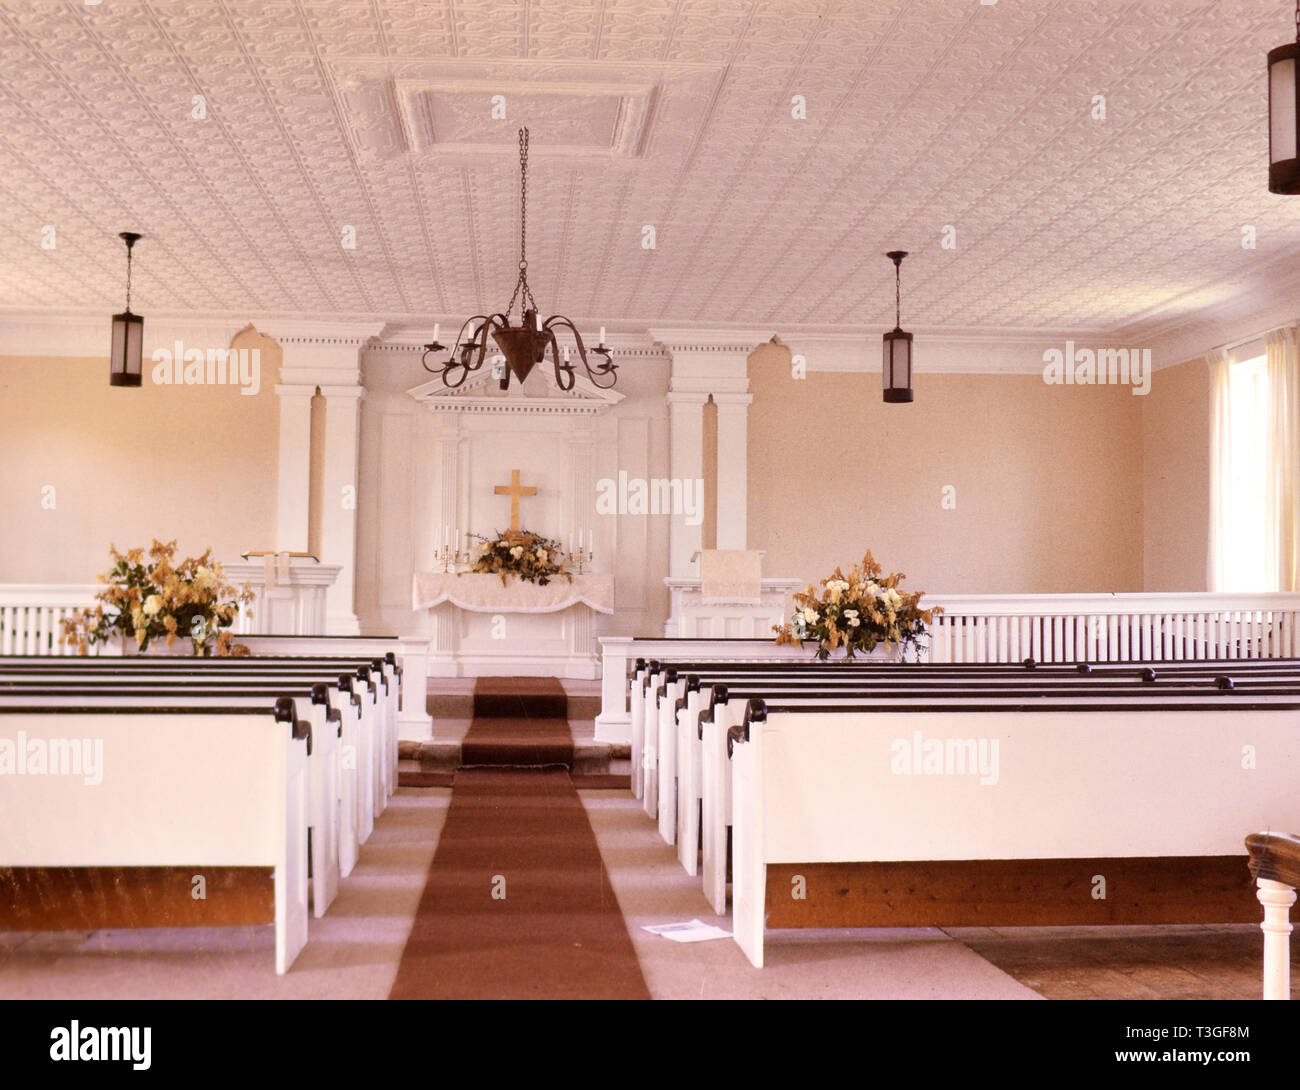 Interior of empty pews inside church in 1960s (ca. 1966-1967) - Stock Image